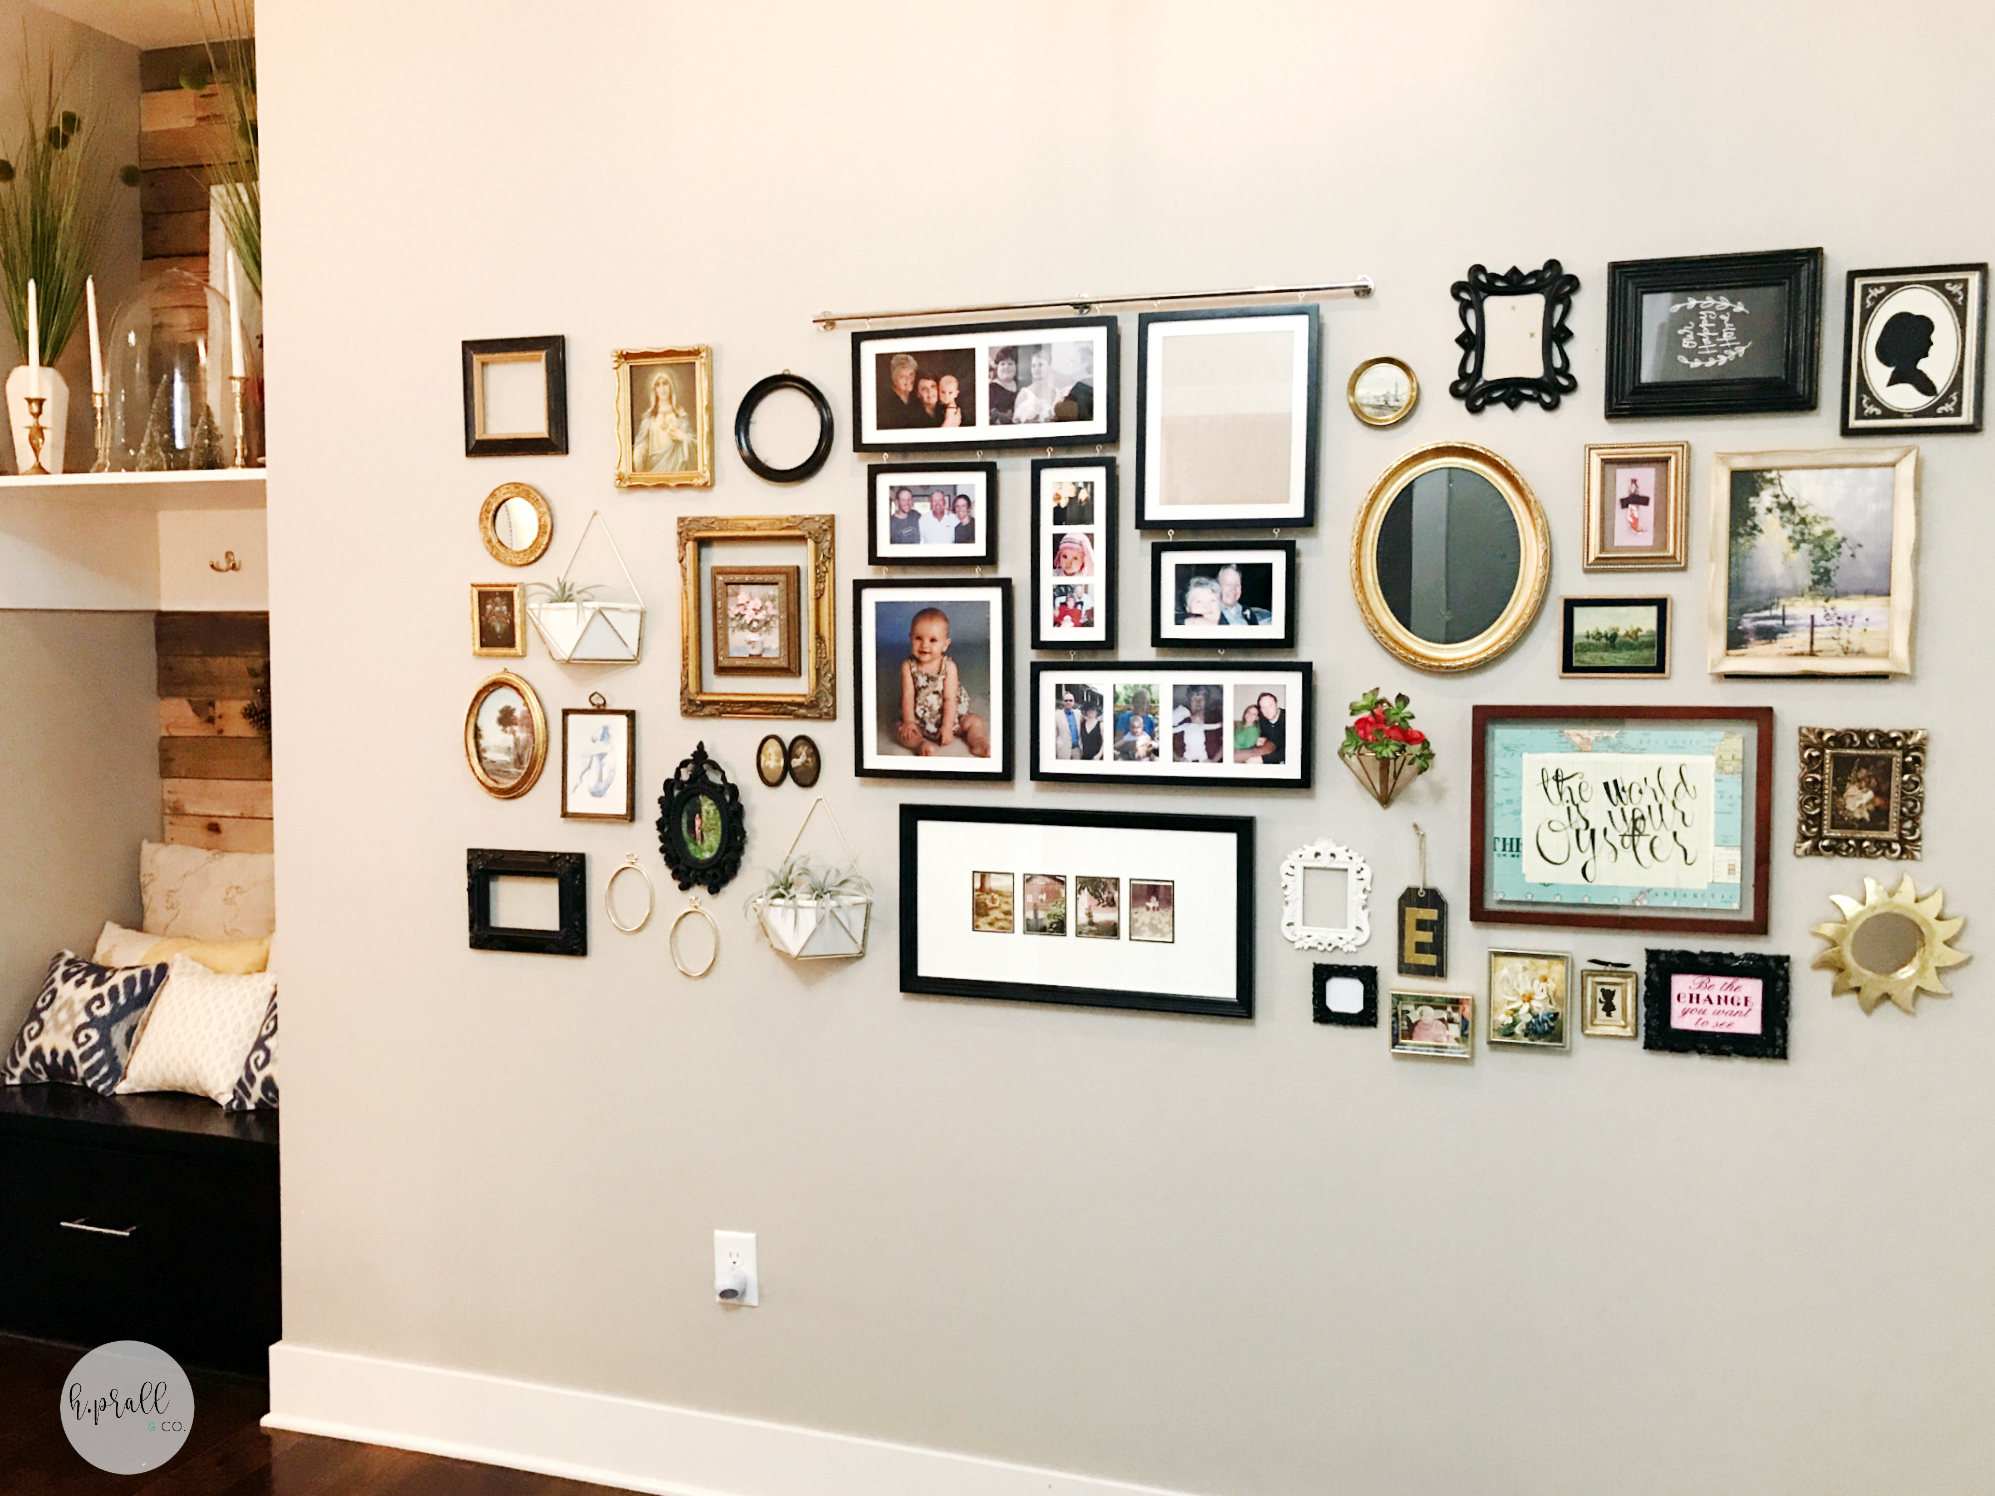 Large gallery wall design by H.Prall & Co. including dark and light frames, and all different shapes and textures.